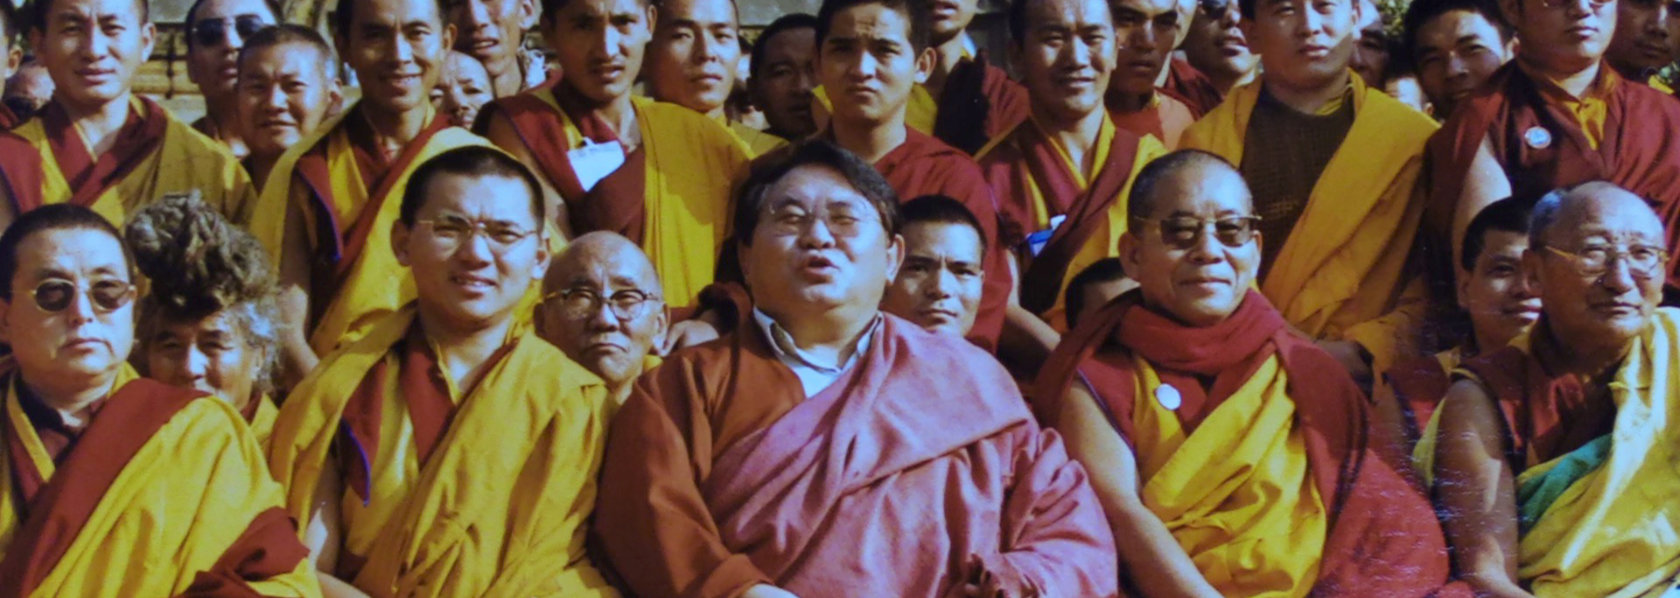 Sogyal Rinpoche in group photo with tibetan monks - Guru in Disgrace - THIS Buddhist Film Festival